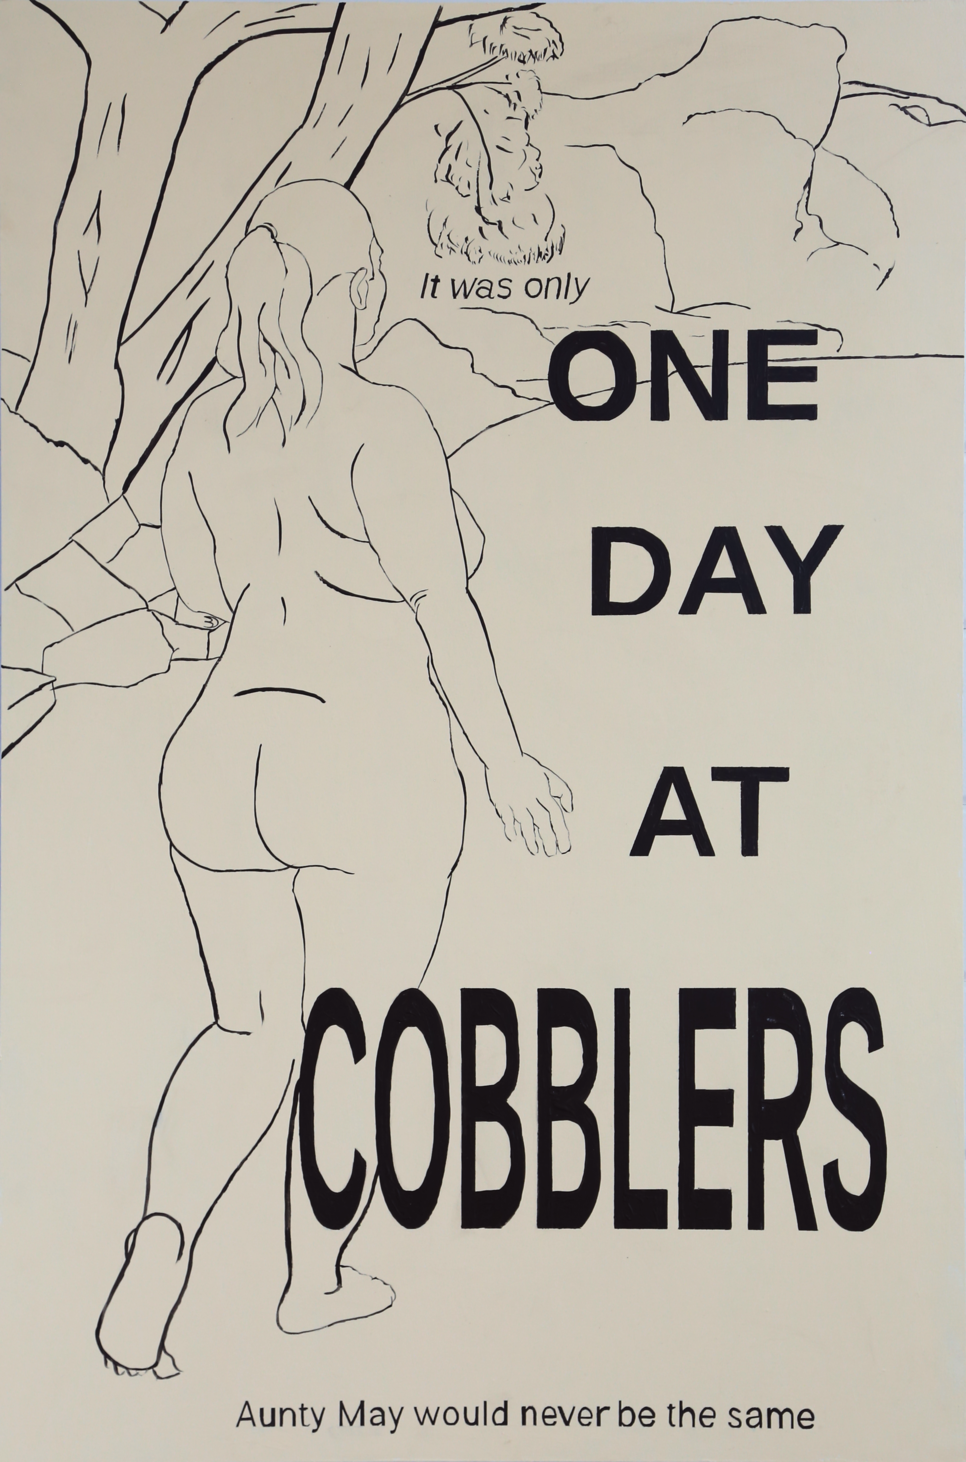 One Day at Cobblers